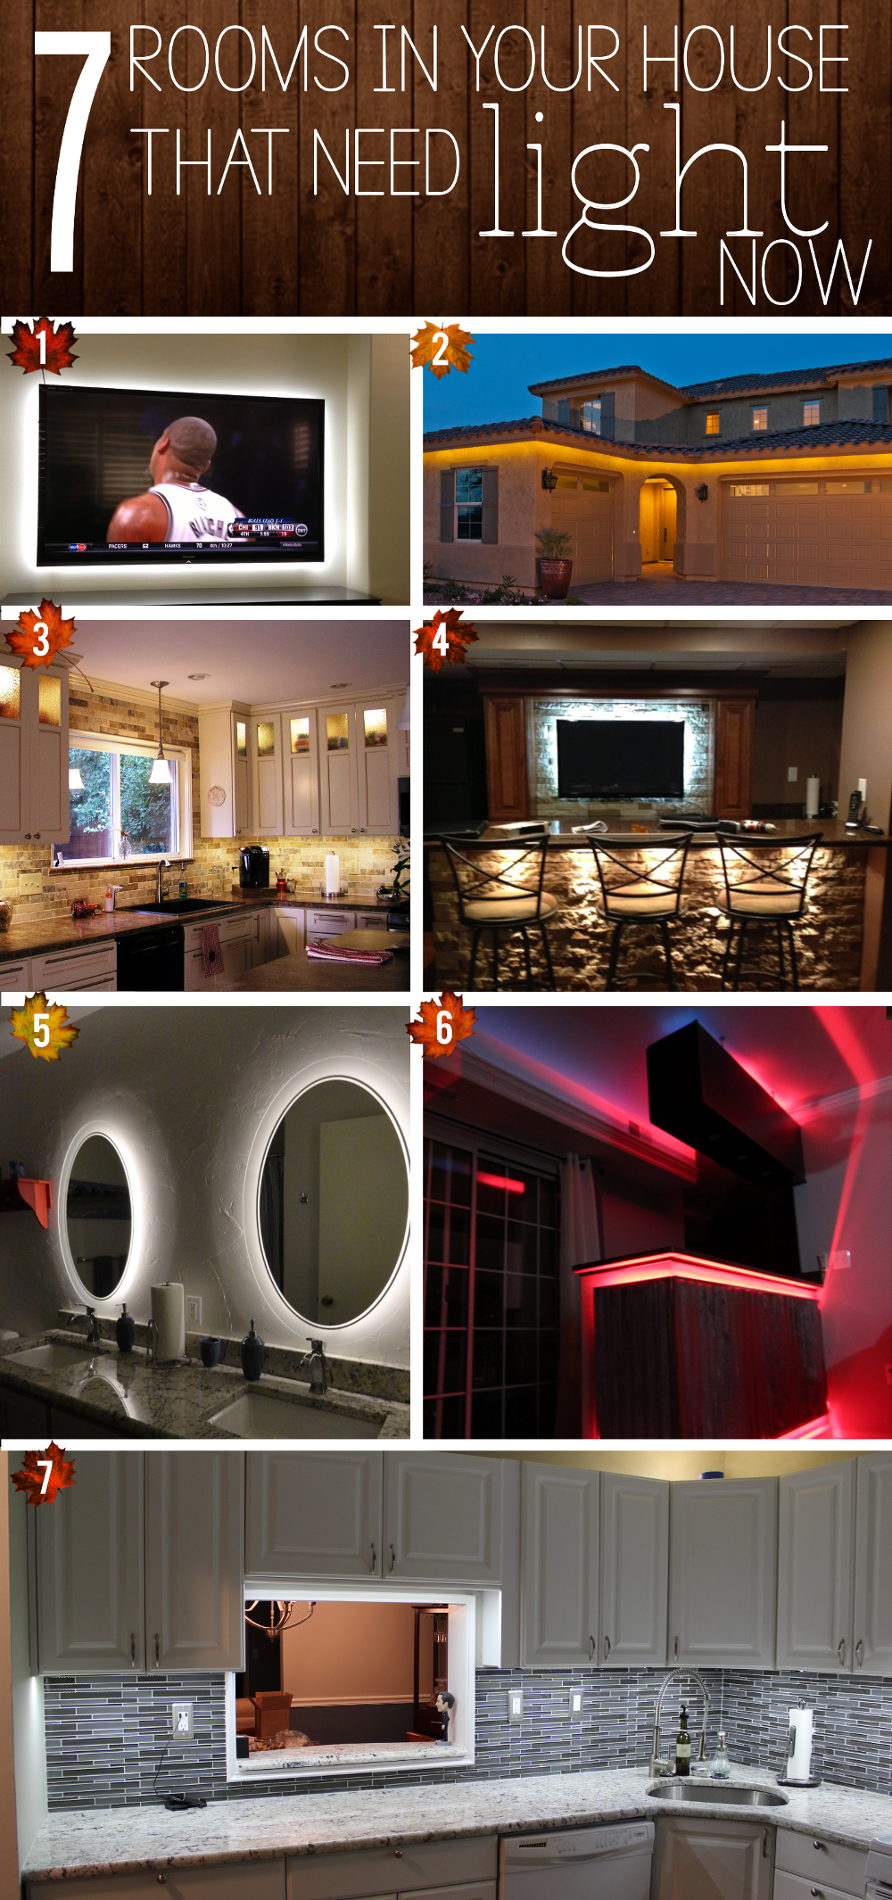 7 rooms in your house that need light now led lighting - Kitchen led lighting design guidelines ...